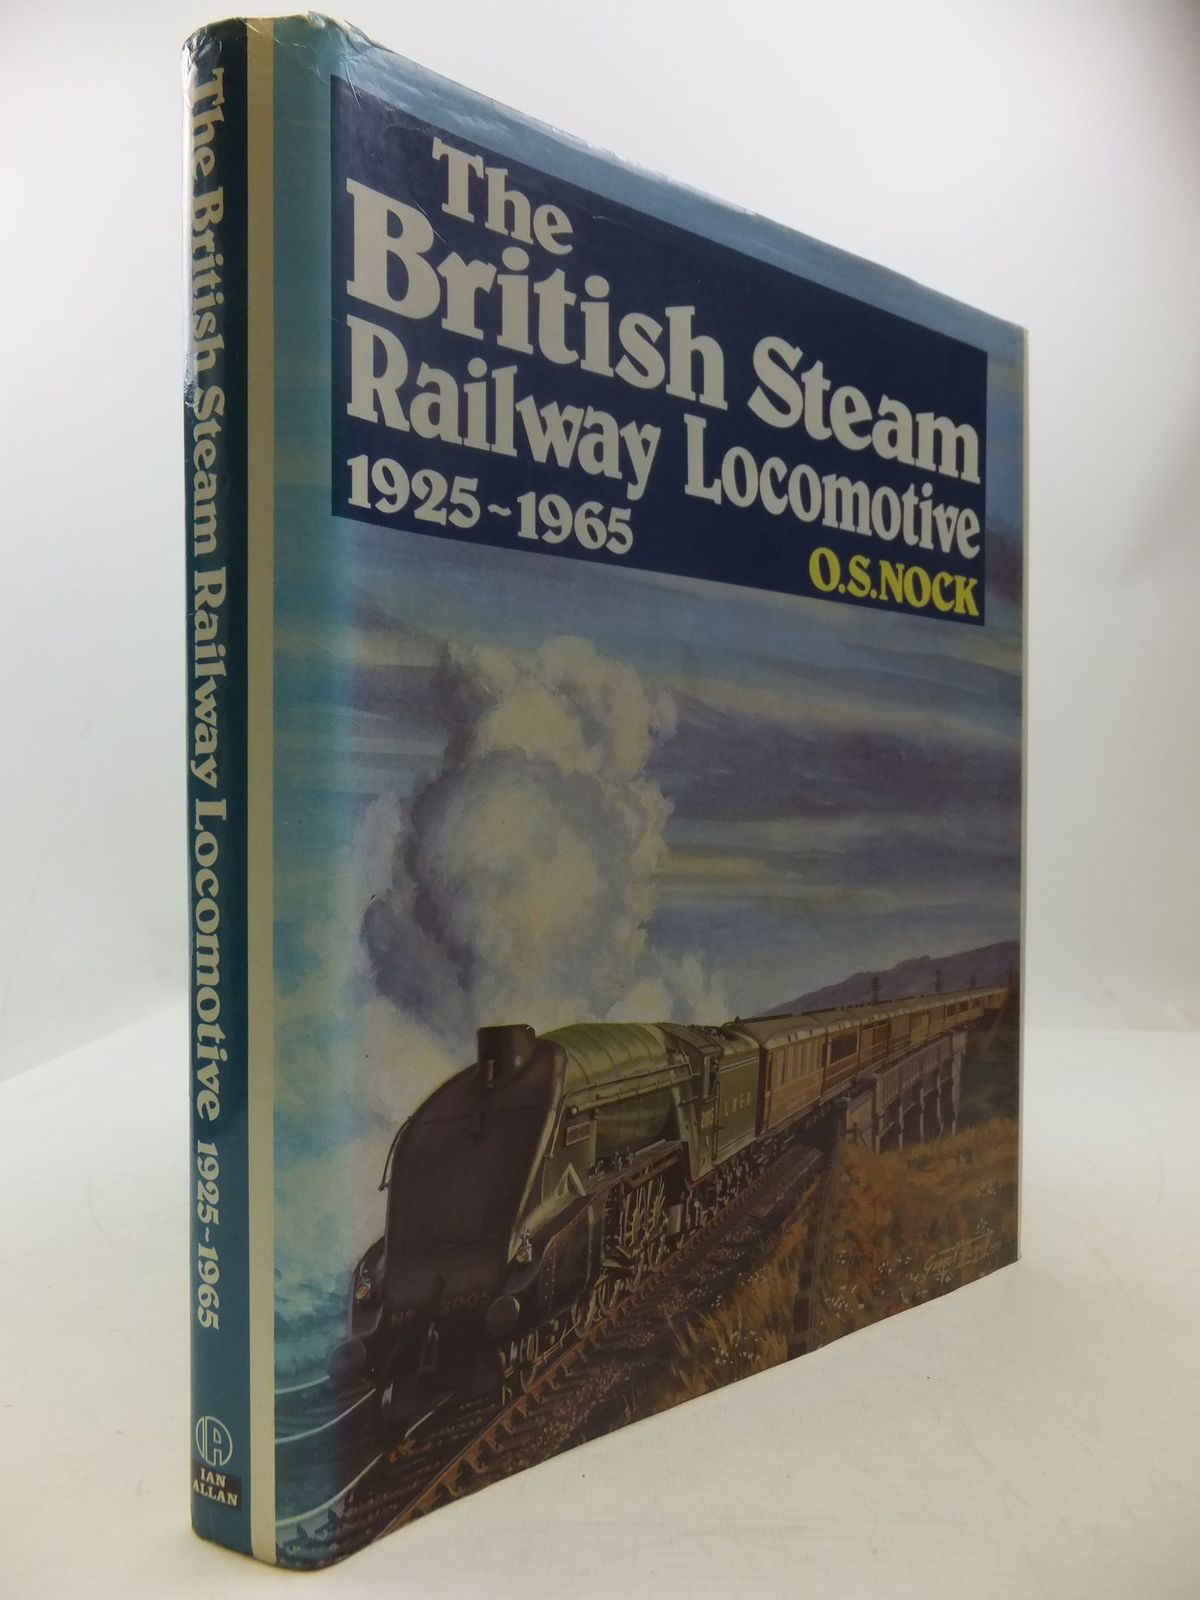 Photo of THE BRITISH STEAM RAILWAY LOCOMOTIVE 1925-1965 written by Nock, O.S. published by Ian Allan Ltd. (STOCK CODE: 1708743)  for sale by Stella & Rose's Books